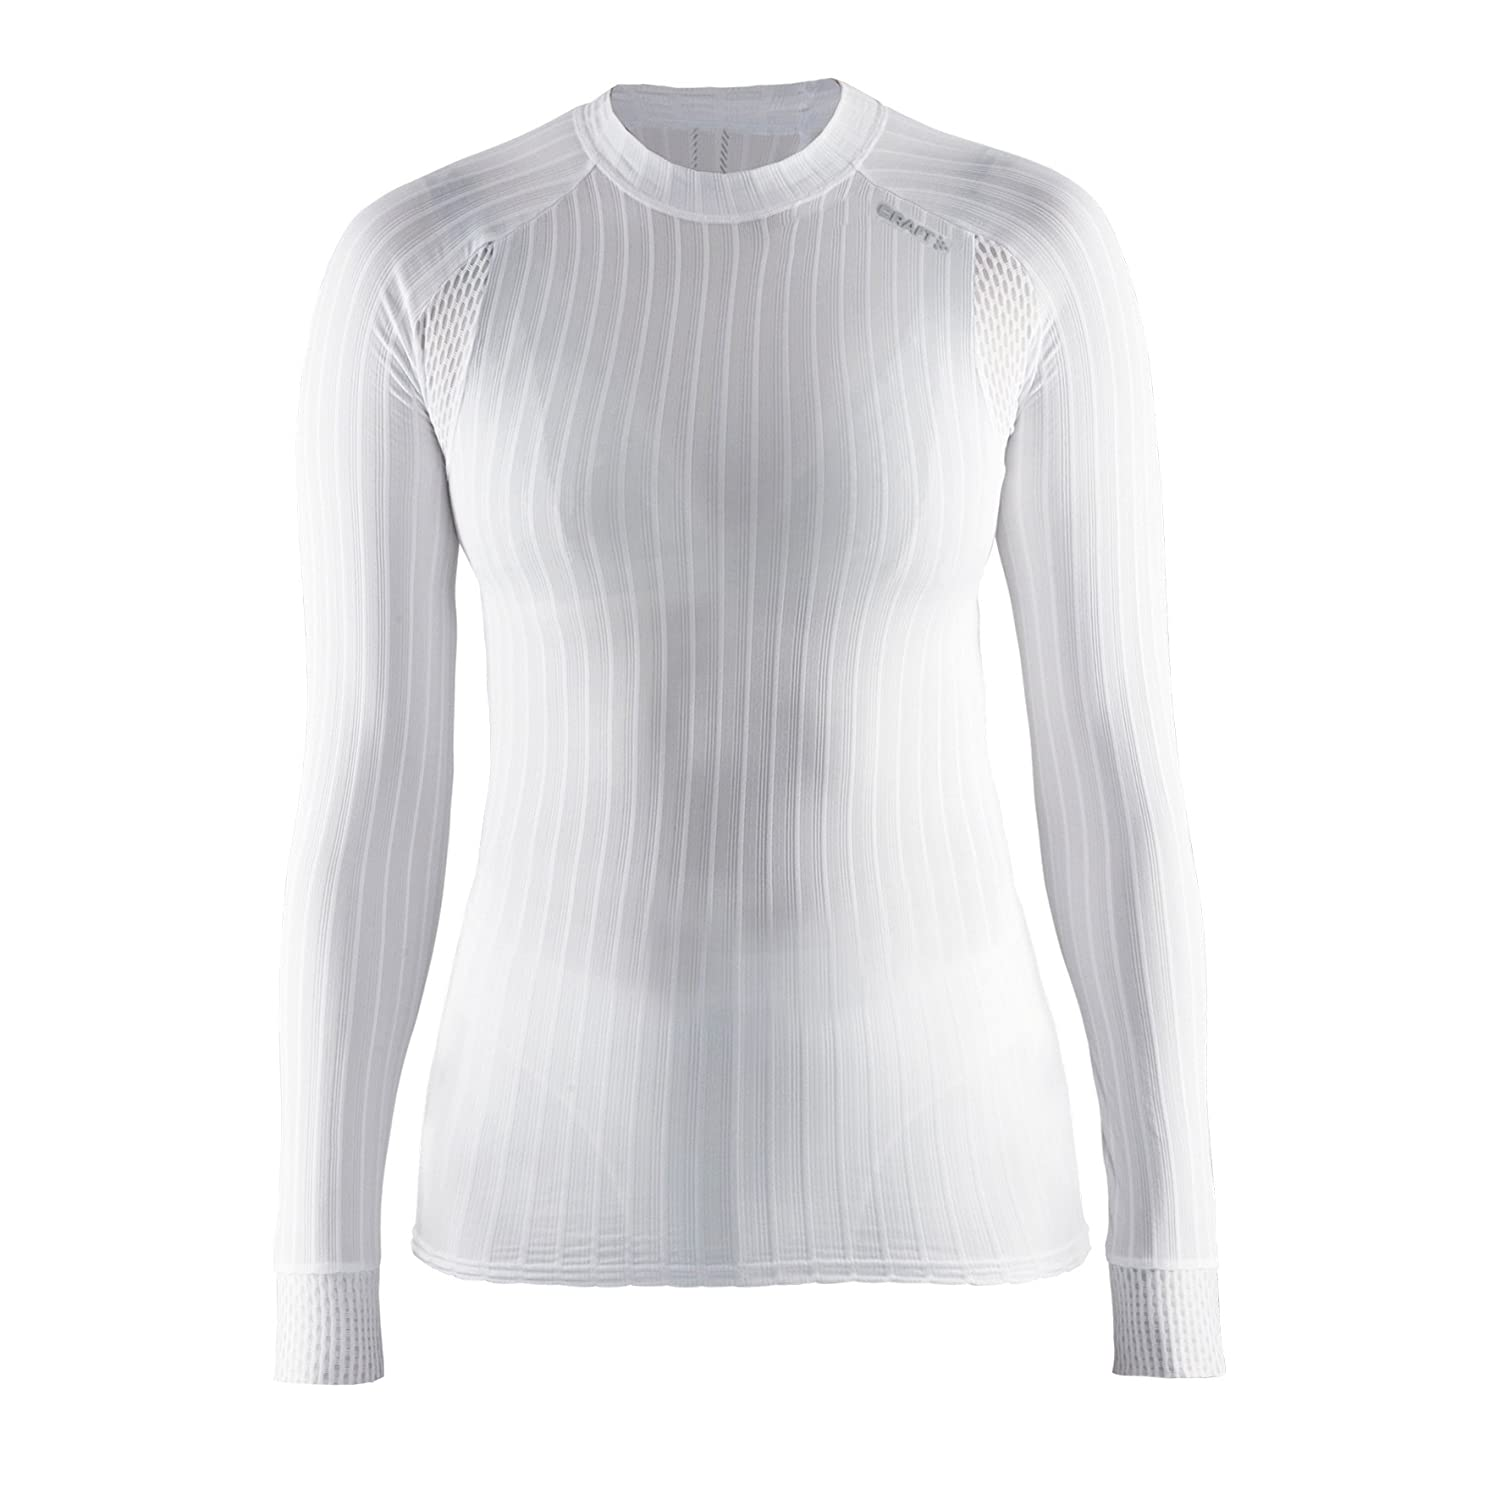 Craft Womens/Ladies Active Extreme 2.0 CN Long Sleeve Baselayer Top